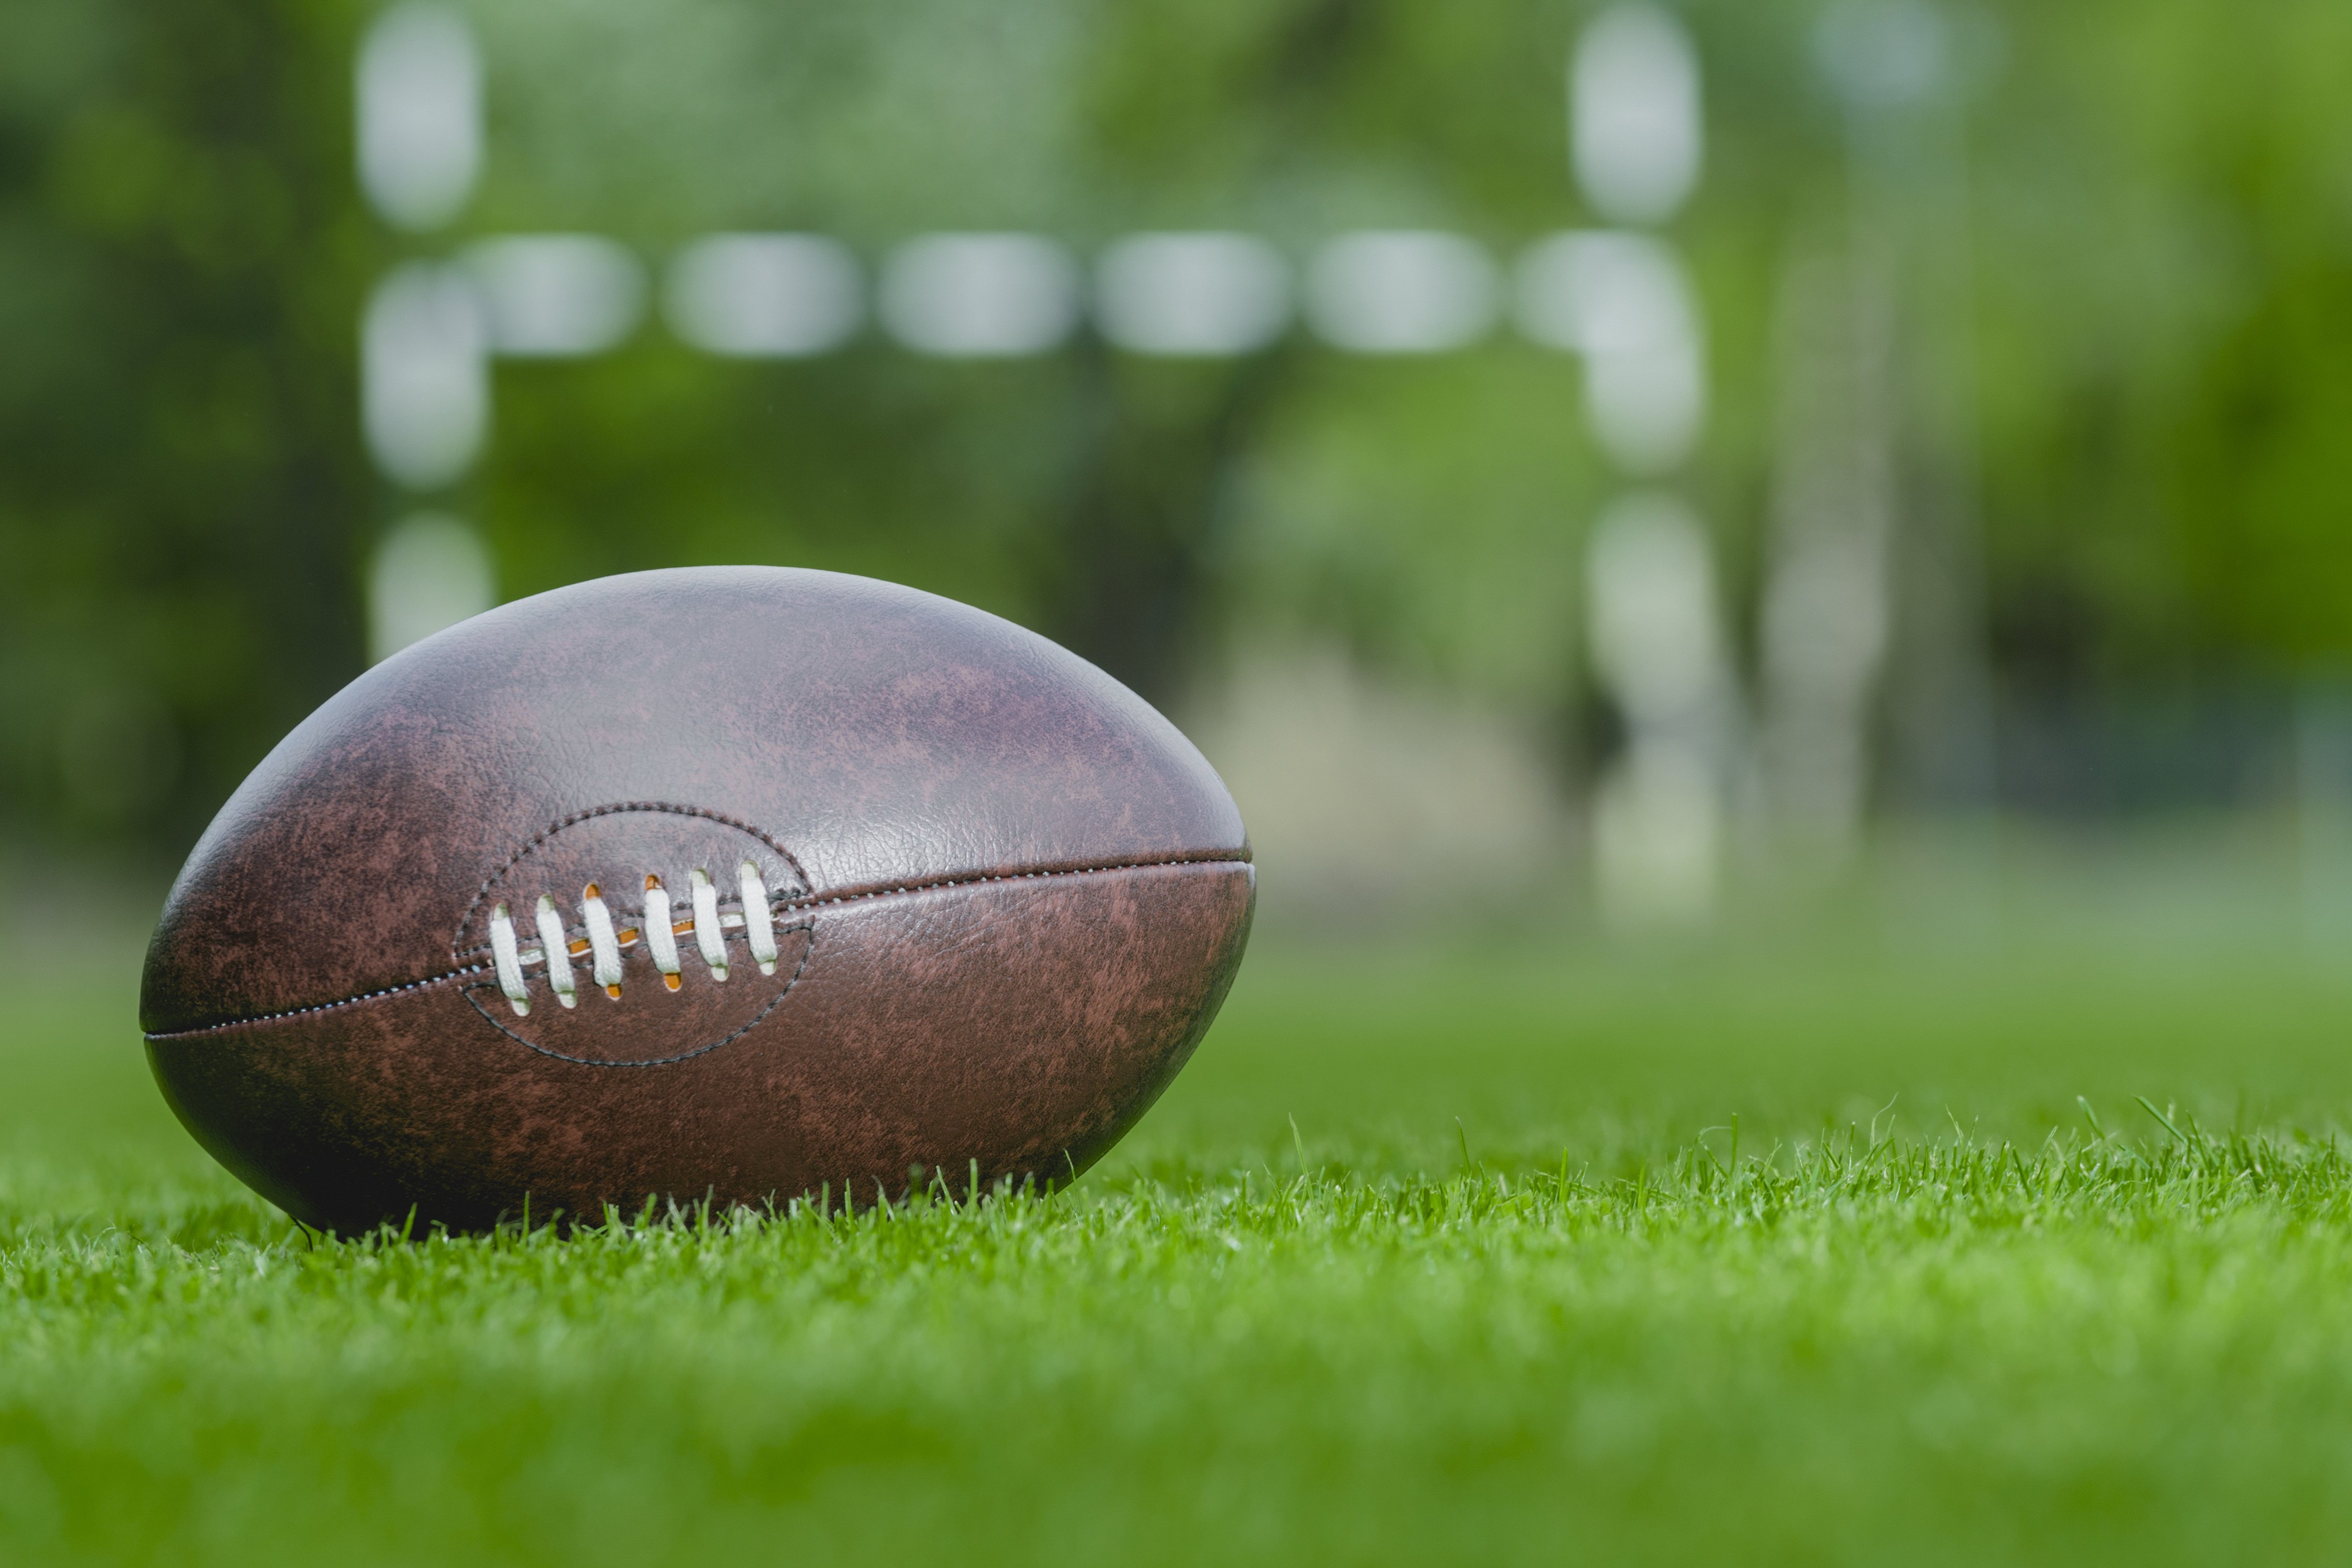 American football, rugby ball on a green grass field background. | Photo: Getty images